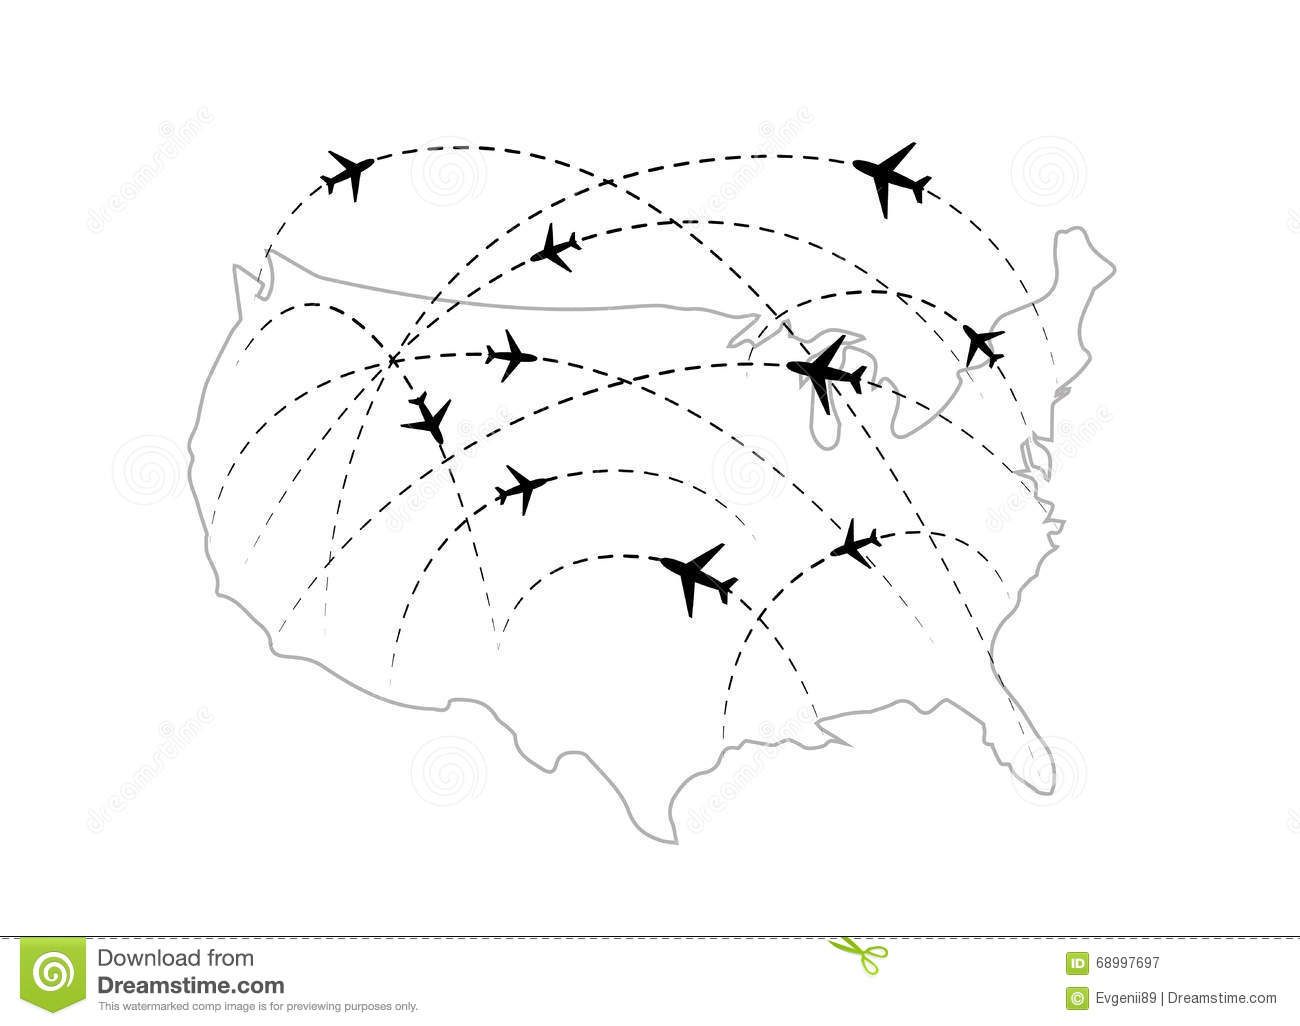 Clipartfox plane icons on. Airplane to us clipart map